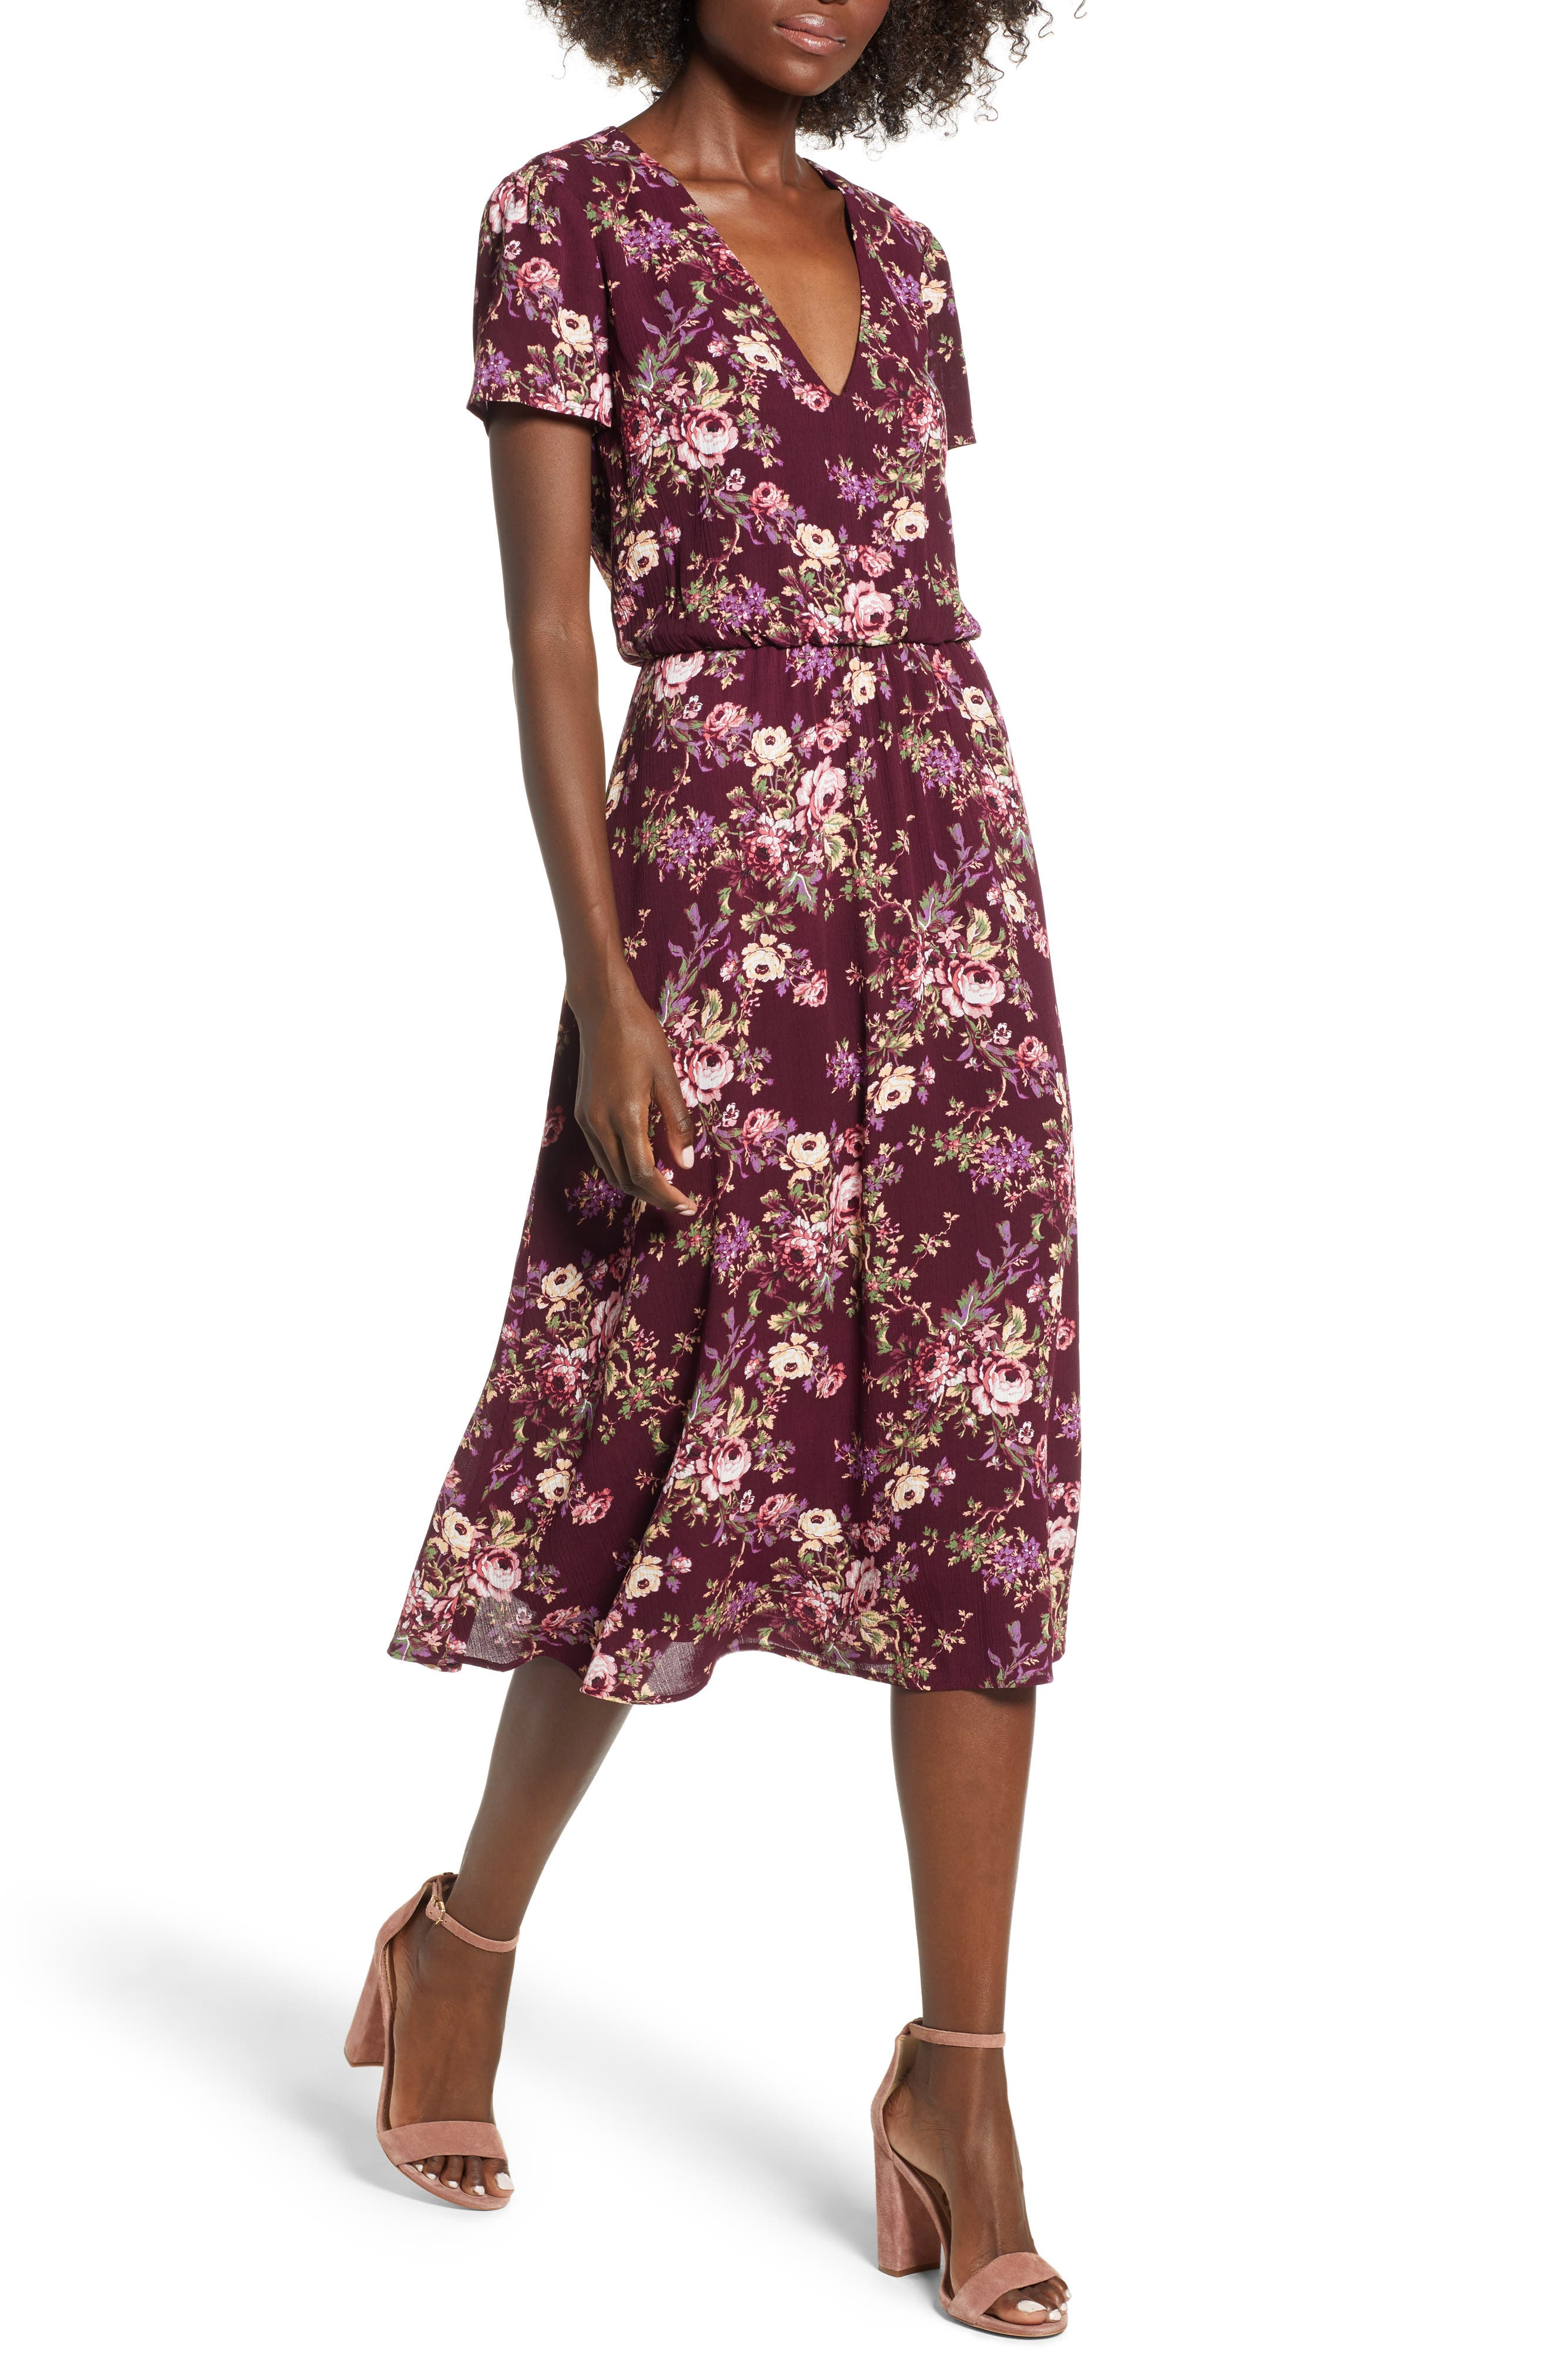 Blouson Midi Dress,                             Main thumbnail 1, color,                             Oxblood Tapestry Floral